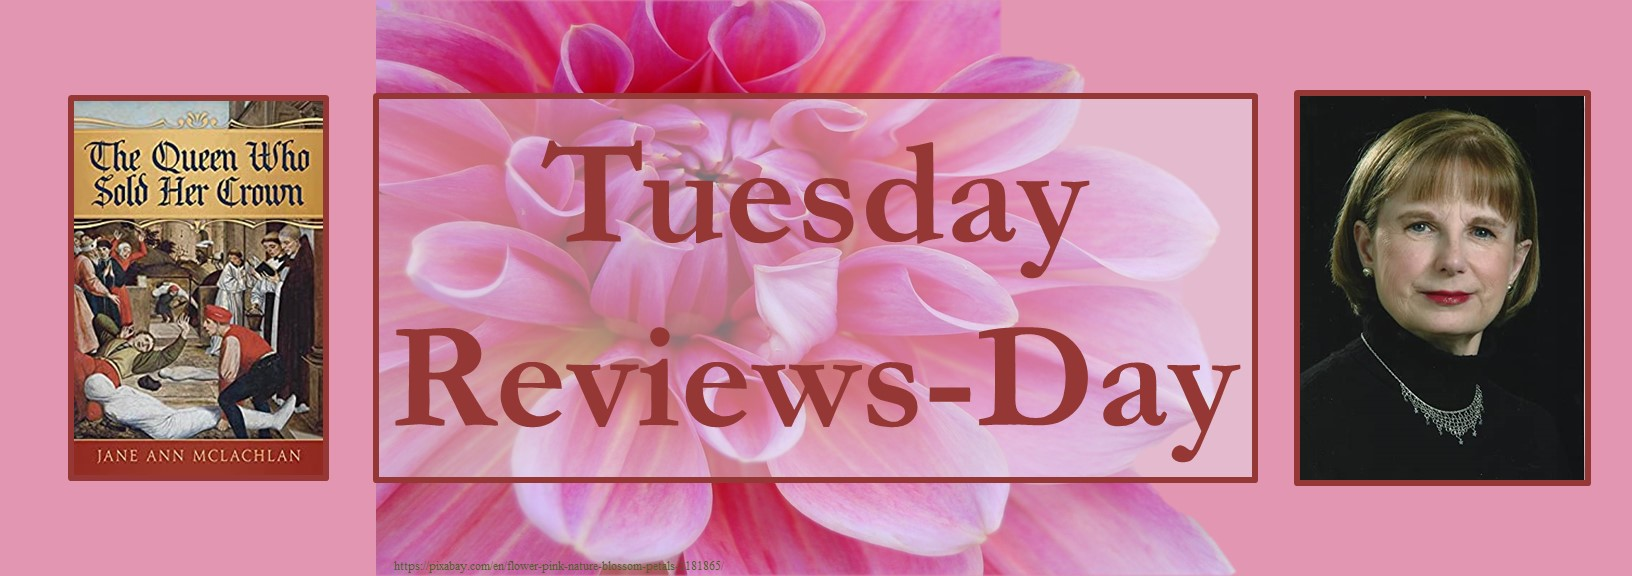 051821 - the queen who sold her crown - tuesday reviews day banner